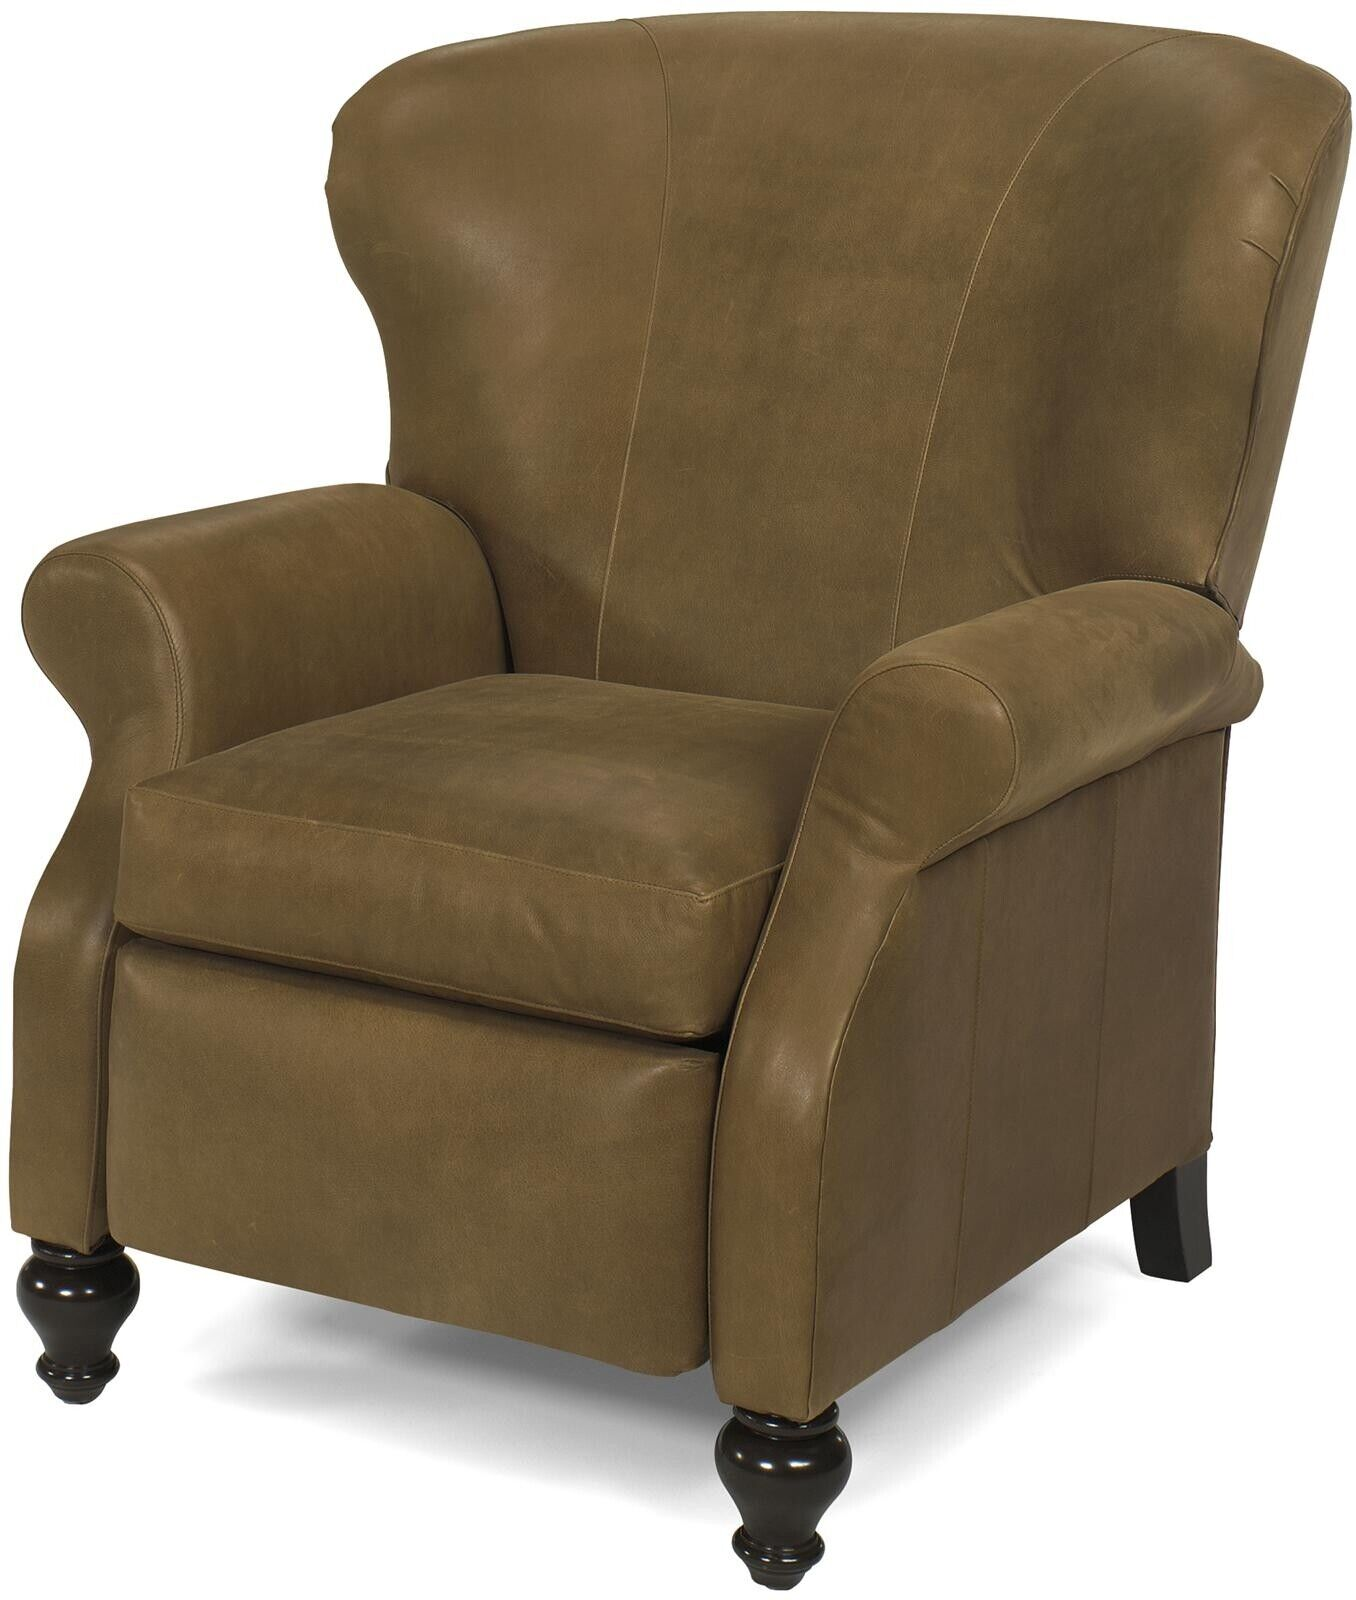 Picture of: Leather Recliner Chair Antique Style Wood Carved Scroll Arms Usa For Sale Online Ebay